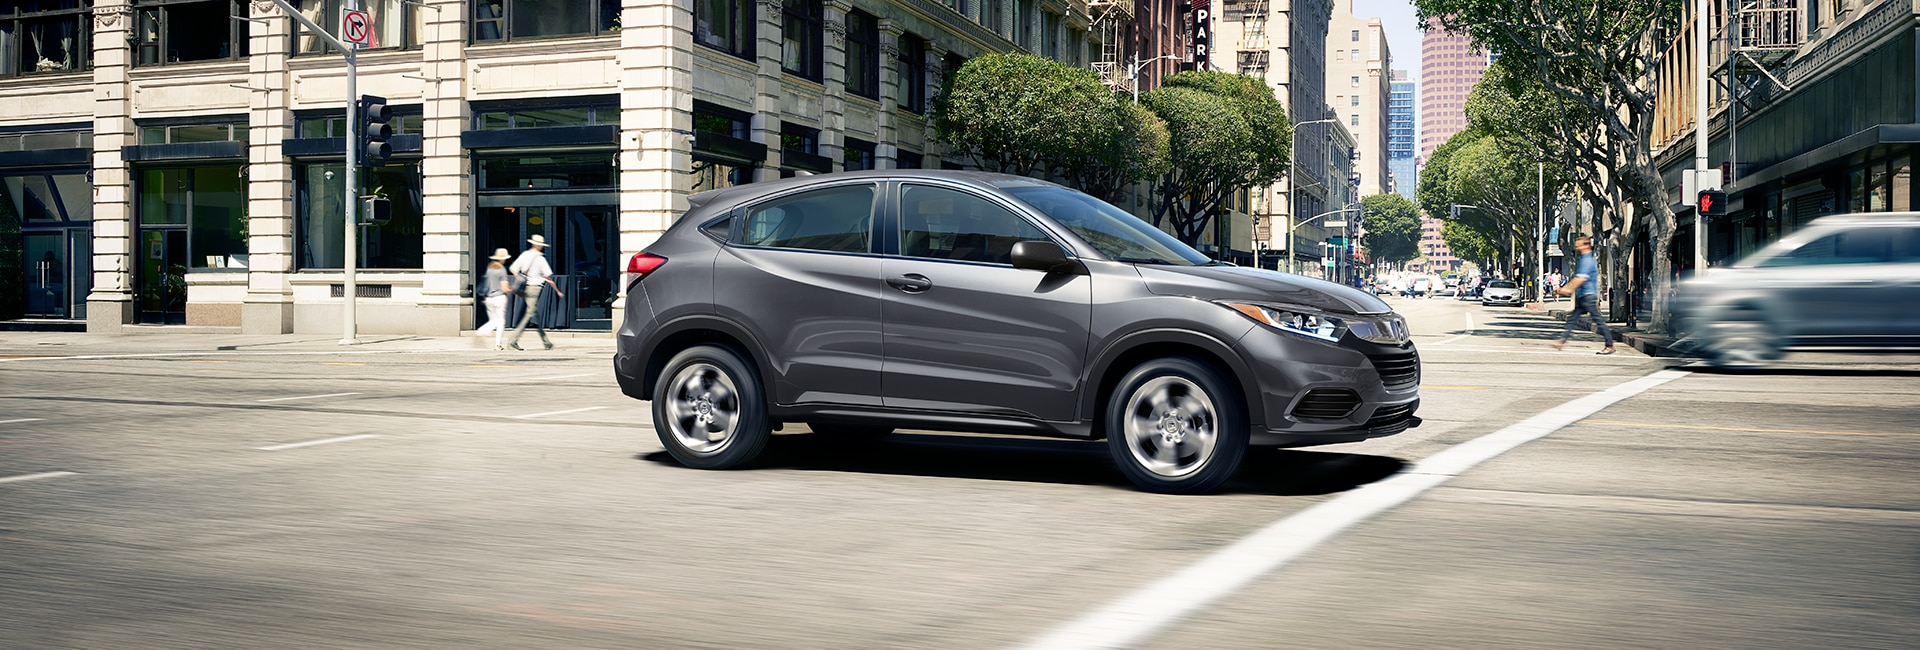 2019 Honda HR-V Exterior Features